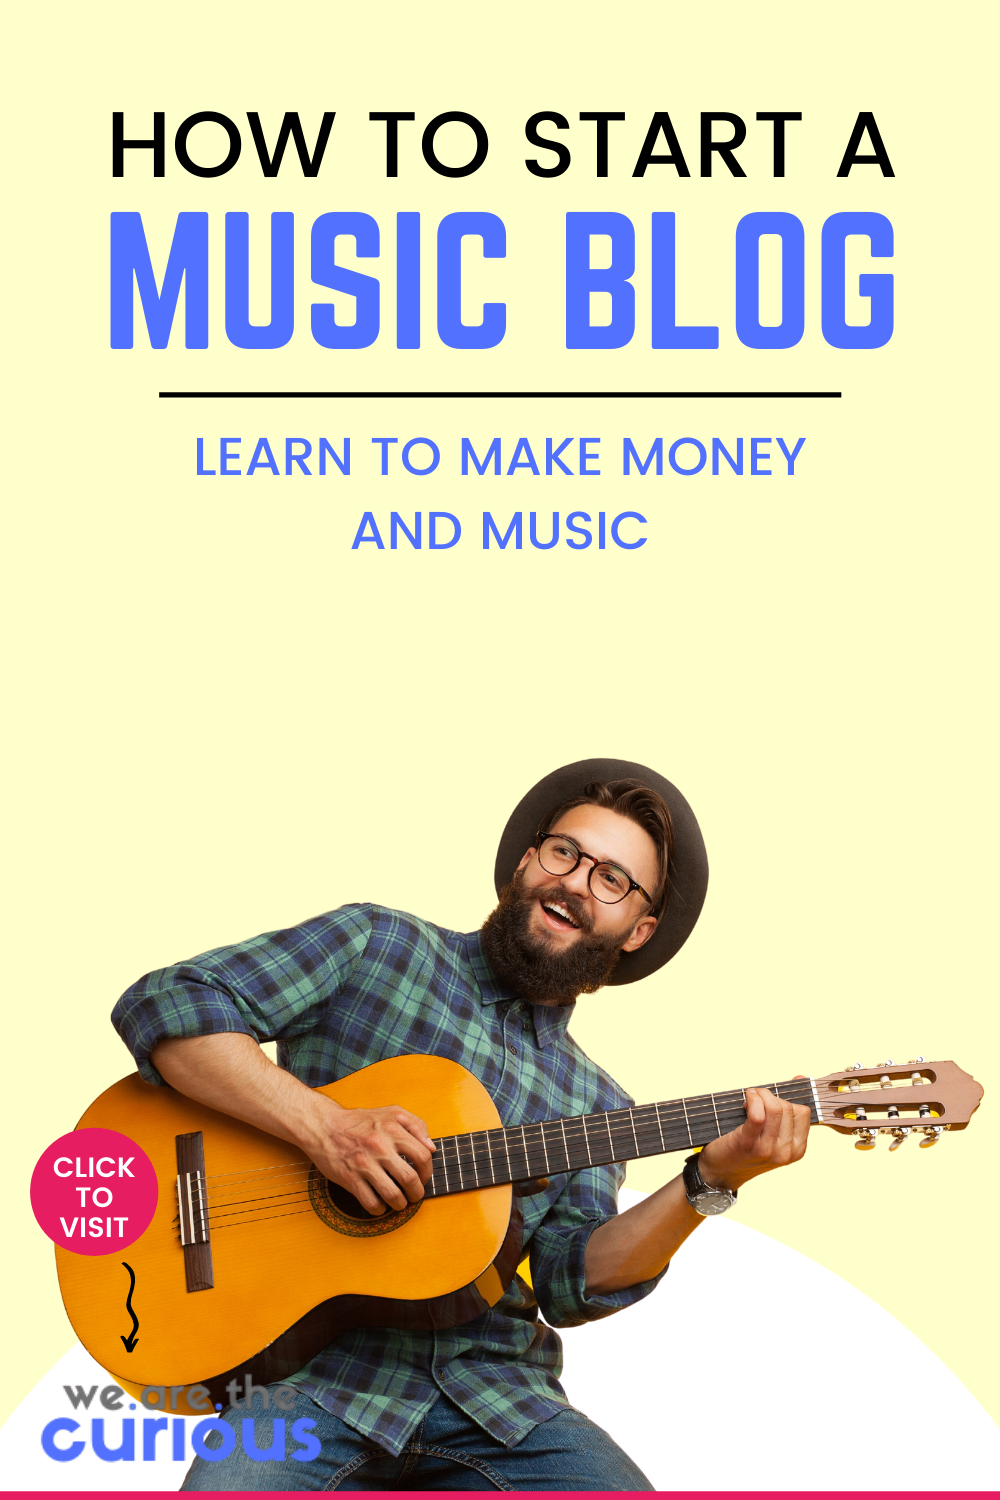 How to Start a Music Blog: Learn to Make Money and